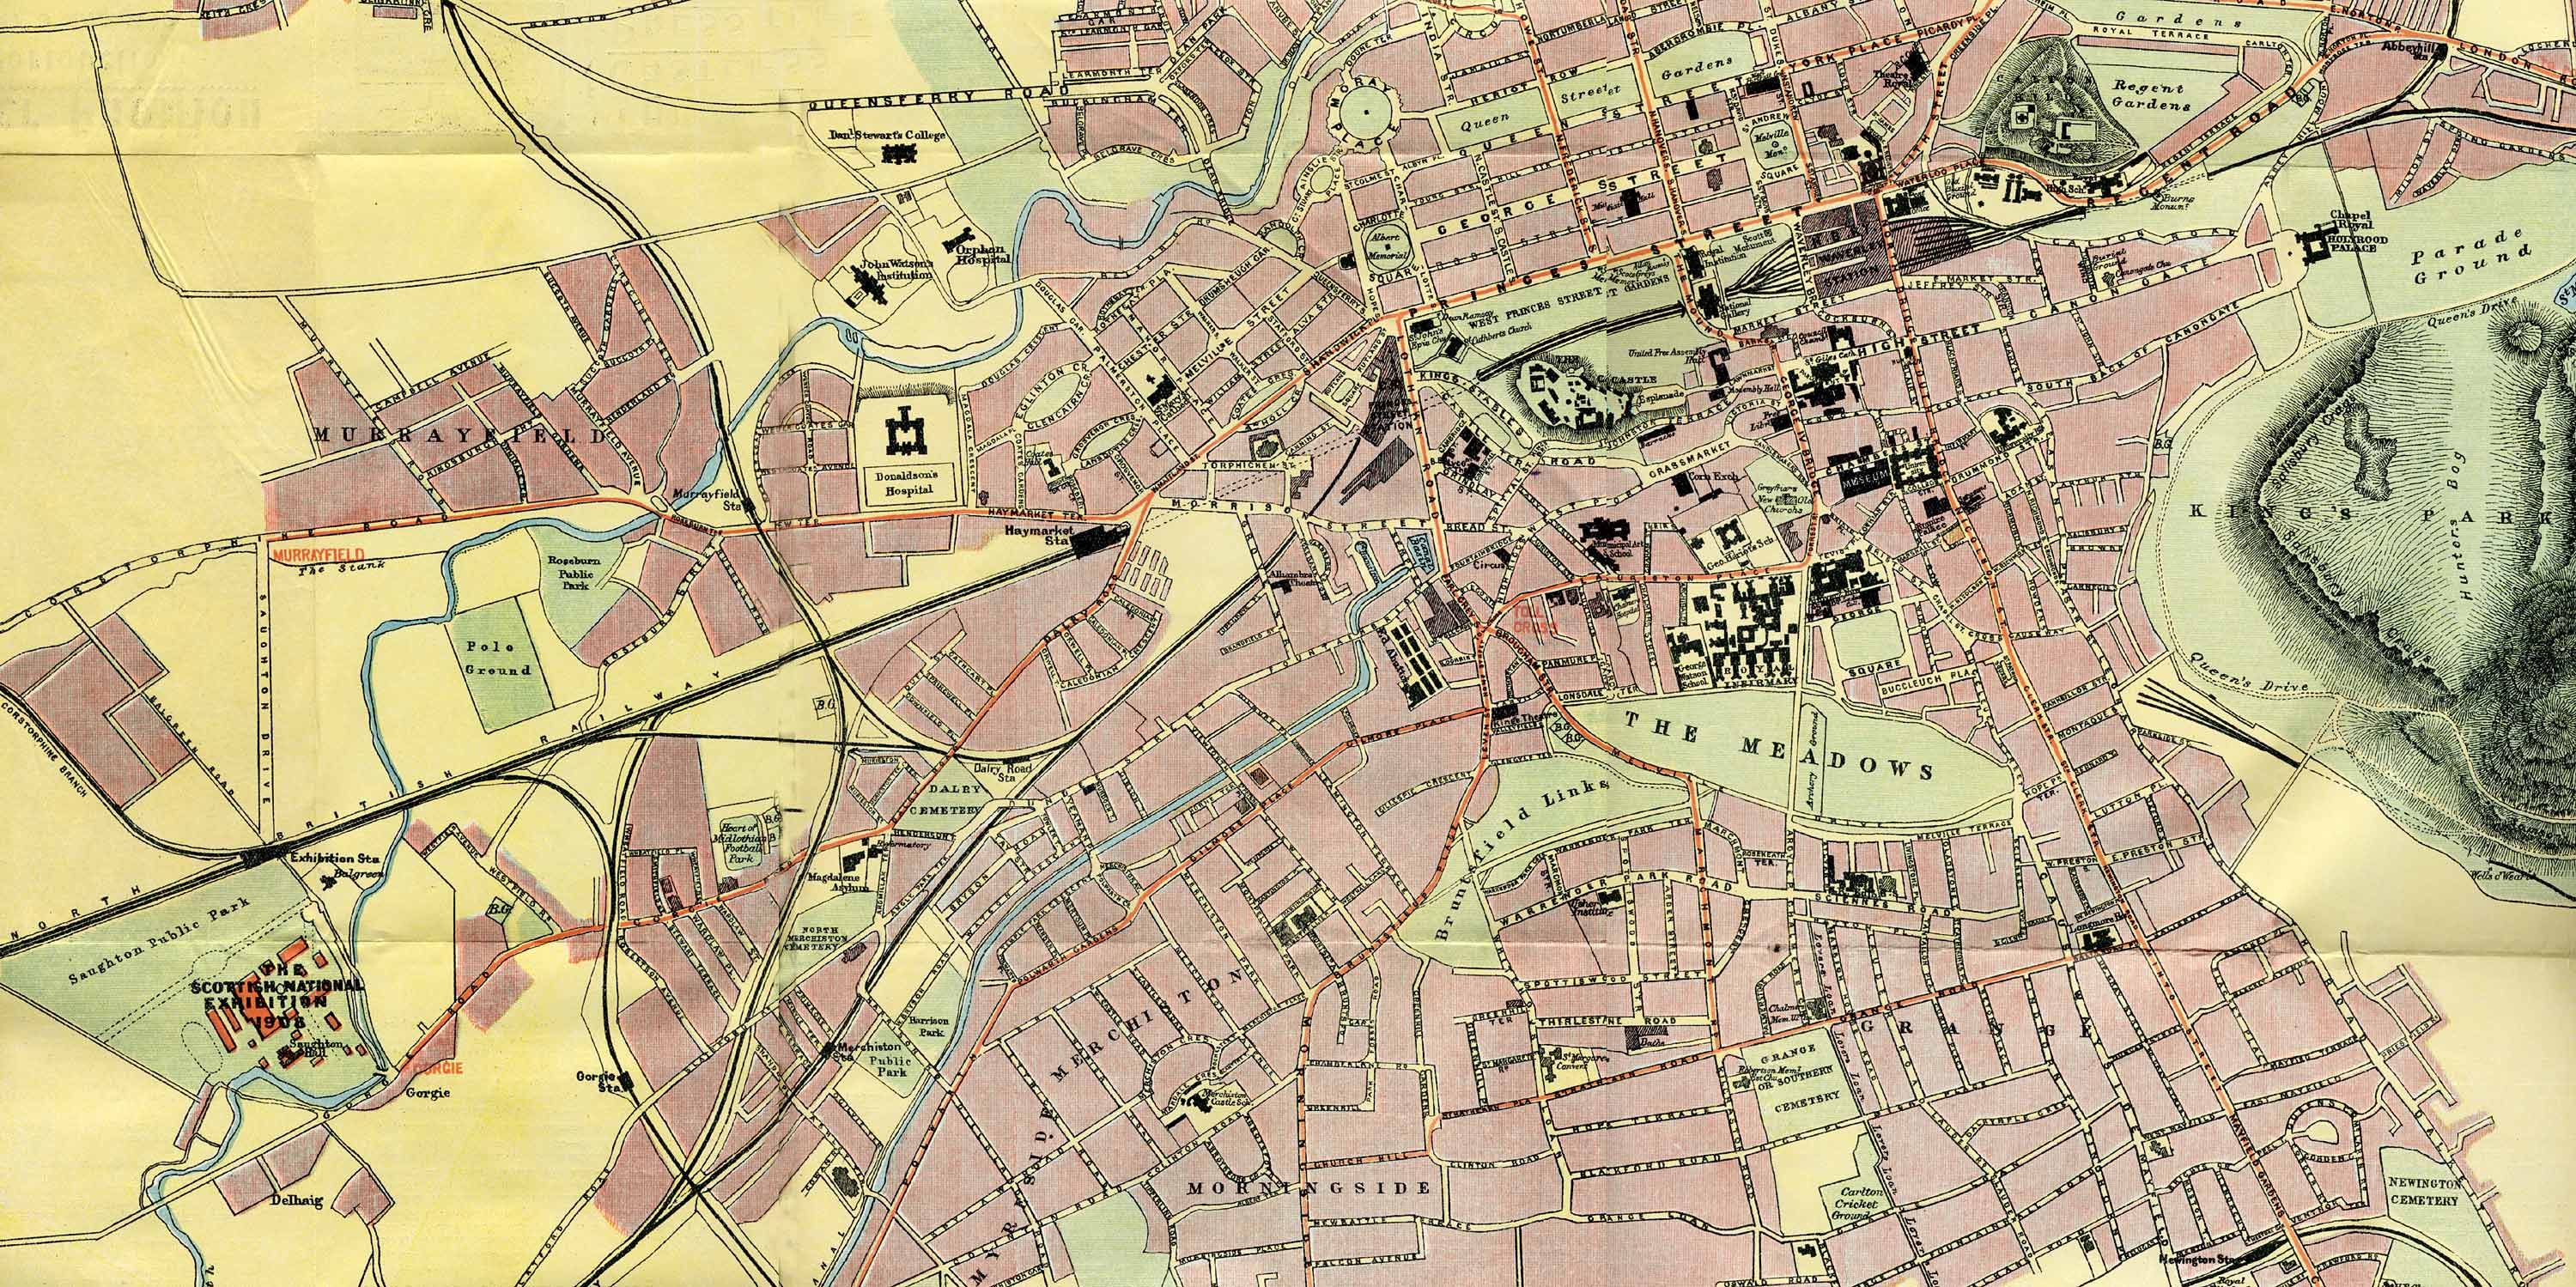 Pulsford's Map of the 1908 Exhibition  -  Enlarged